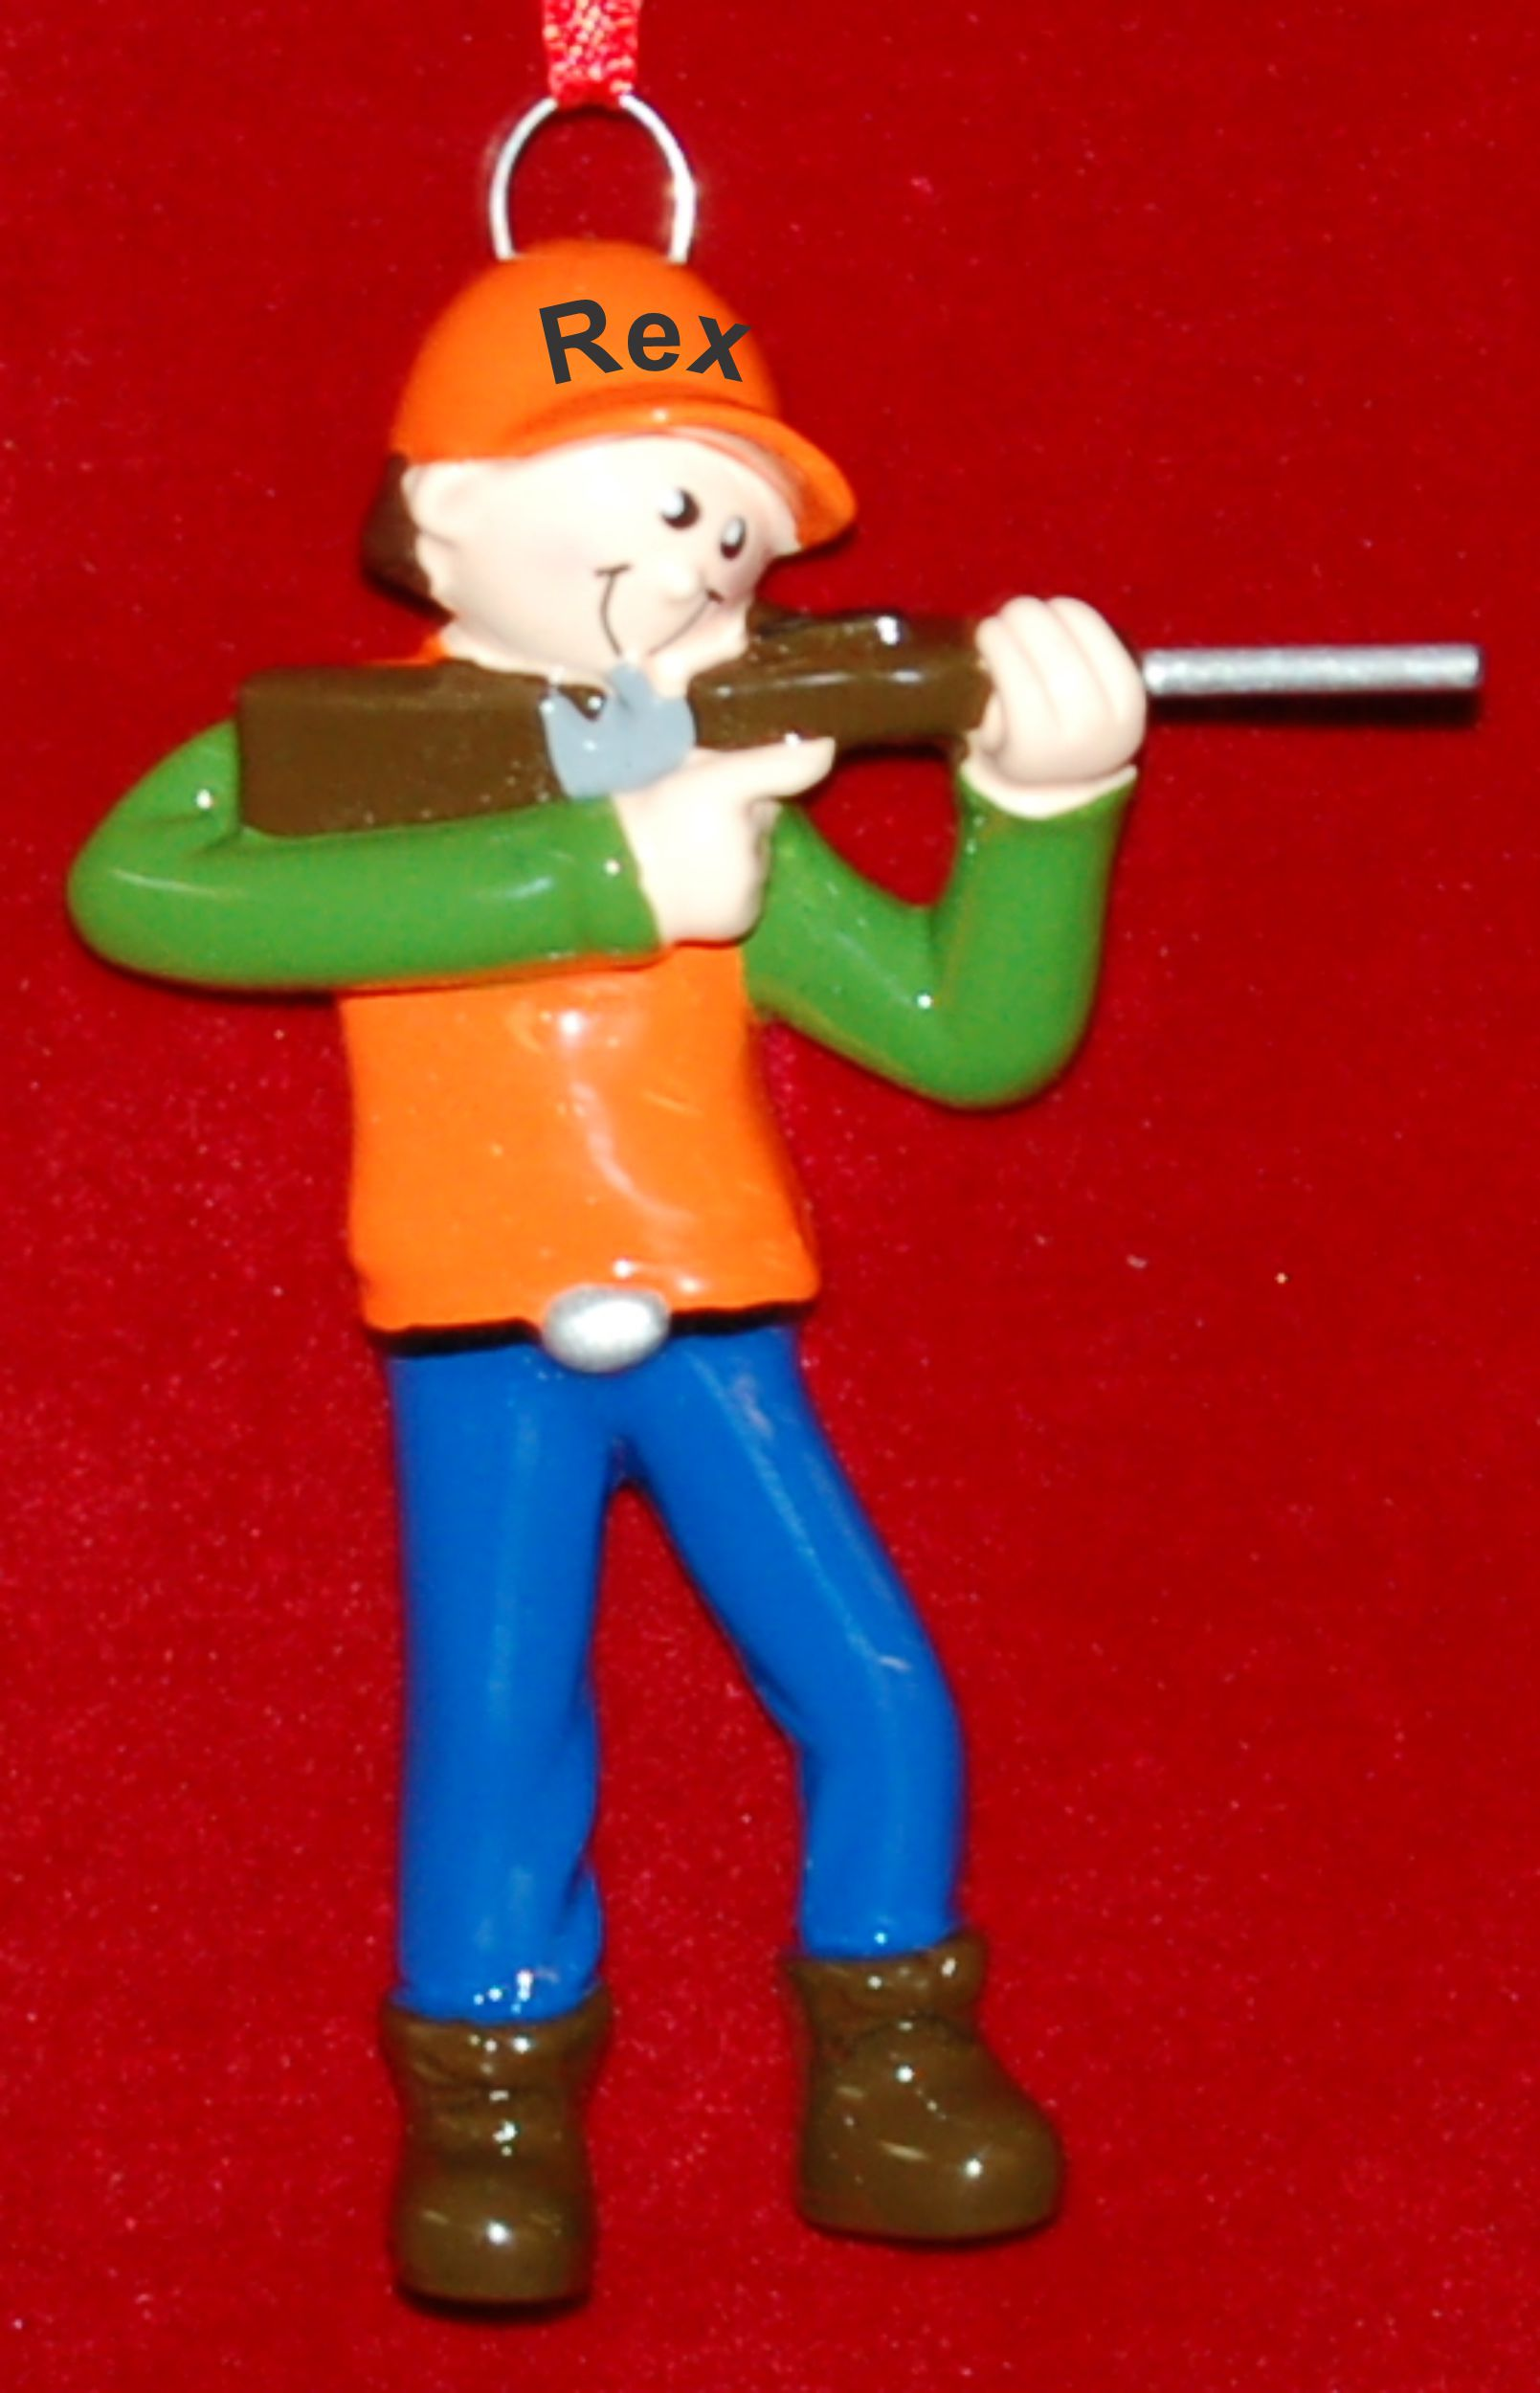 Personalized Hunting Christmas Ornament Safety First by Russell Rhodes